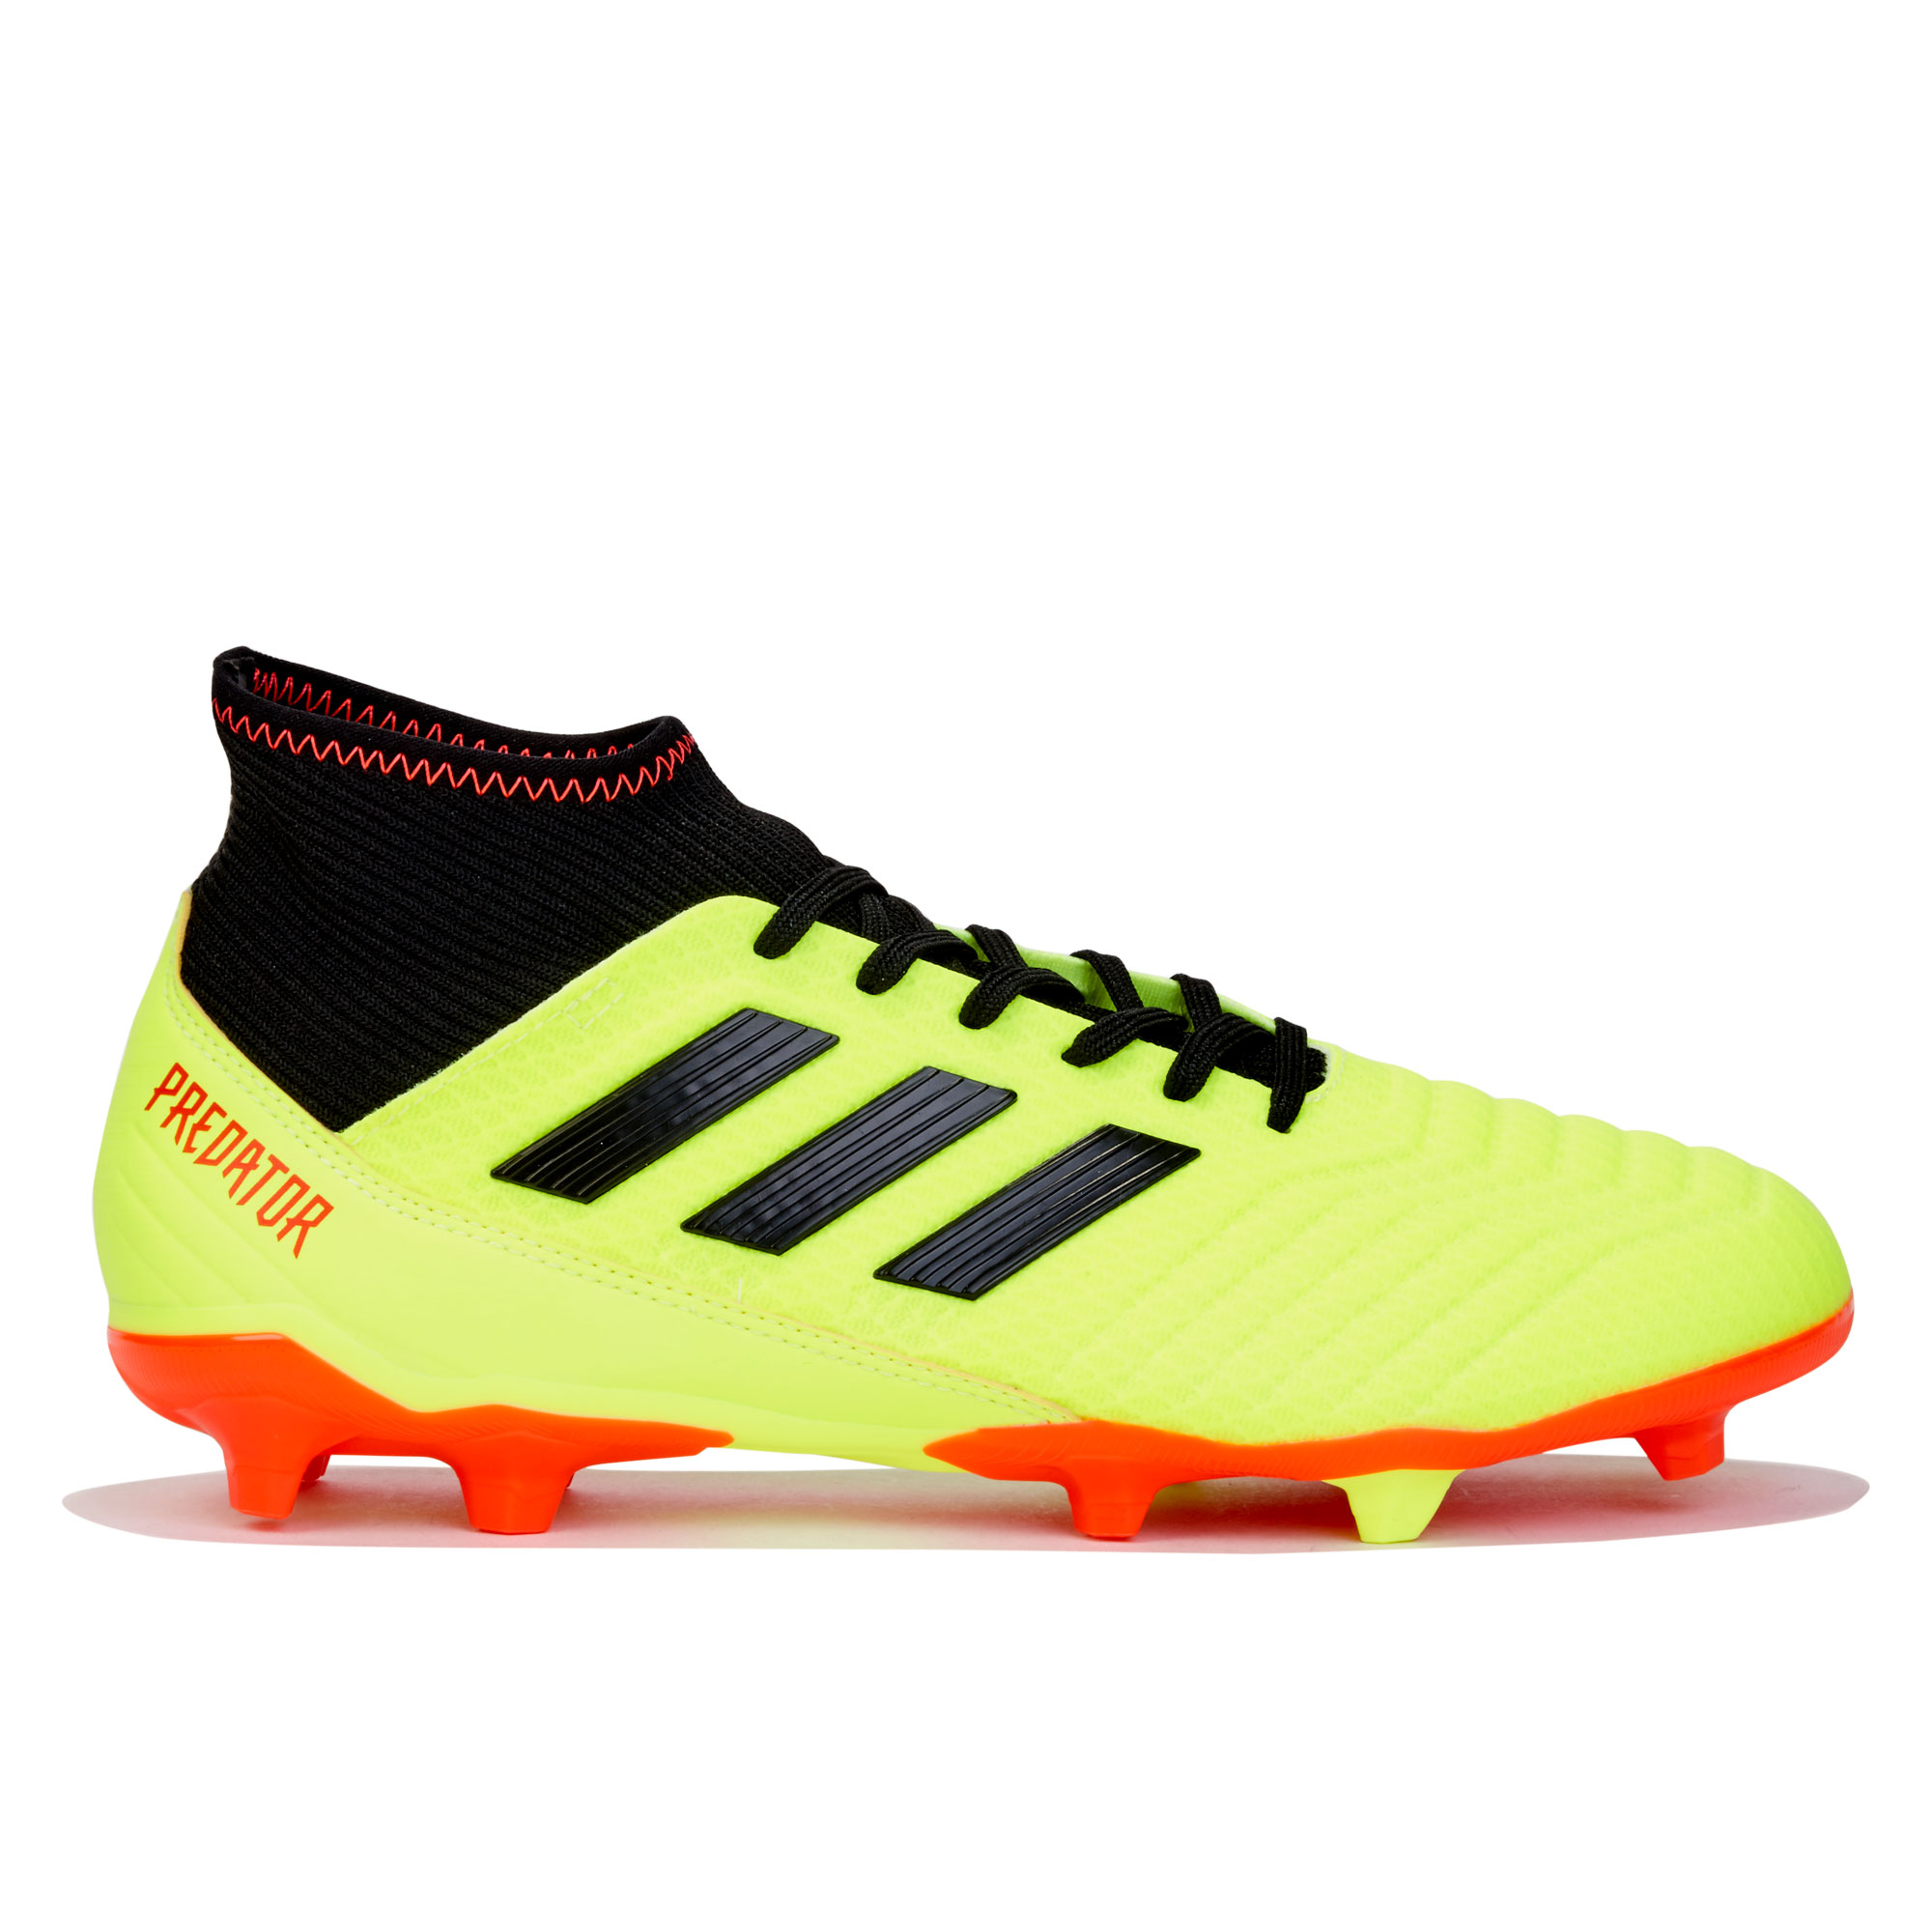 Image of adidas Predator 18.3 Firm Ground Football Boots - Yellow